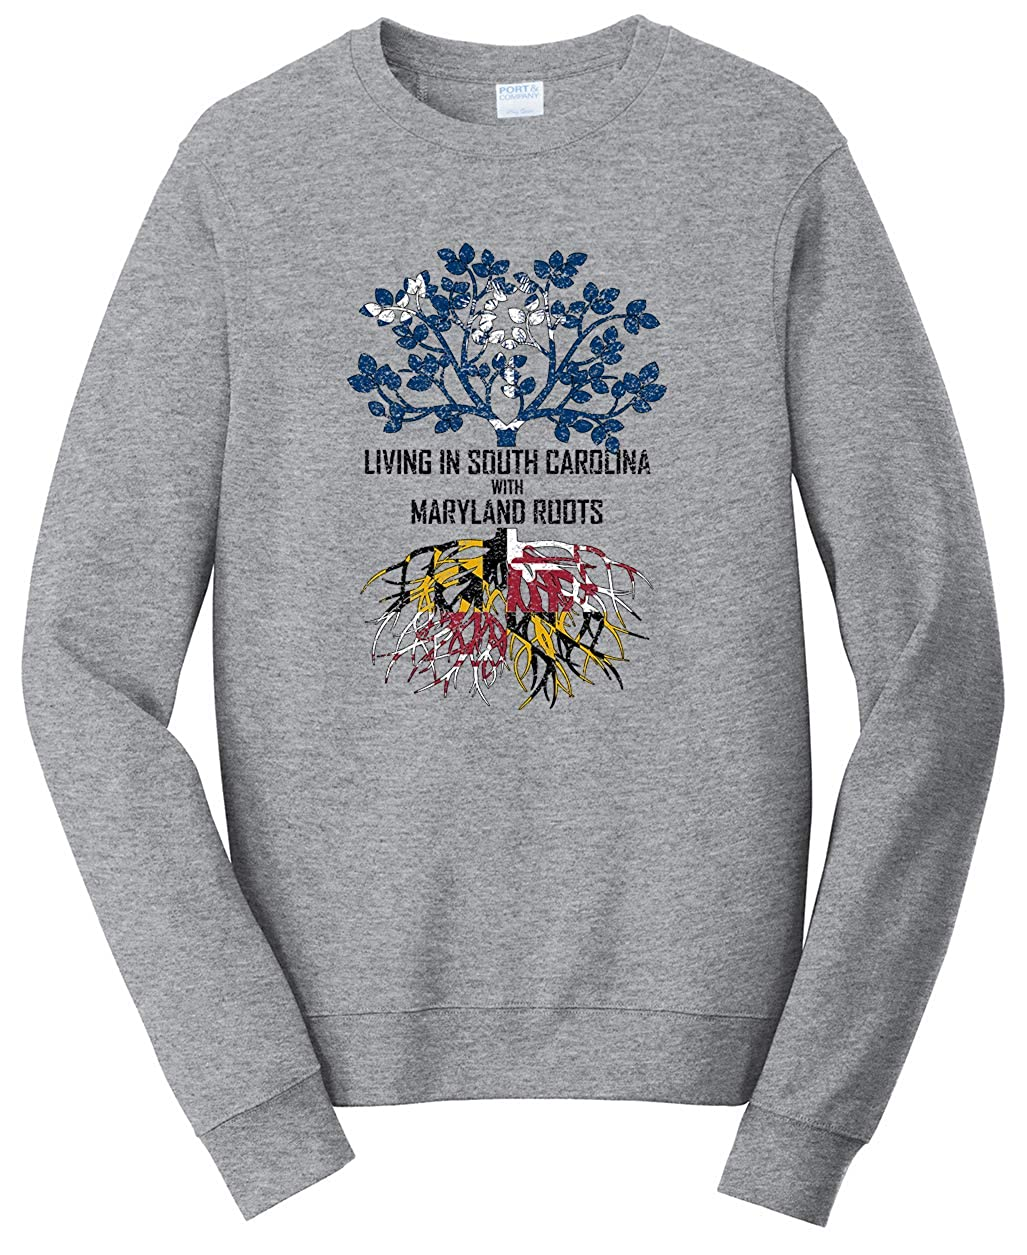 Tenacitee Unisex Living in South Carolina with Maryland Roots Sweatshirt